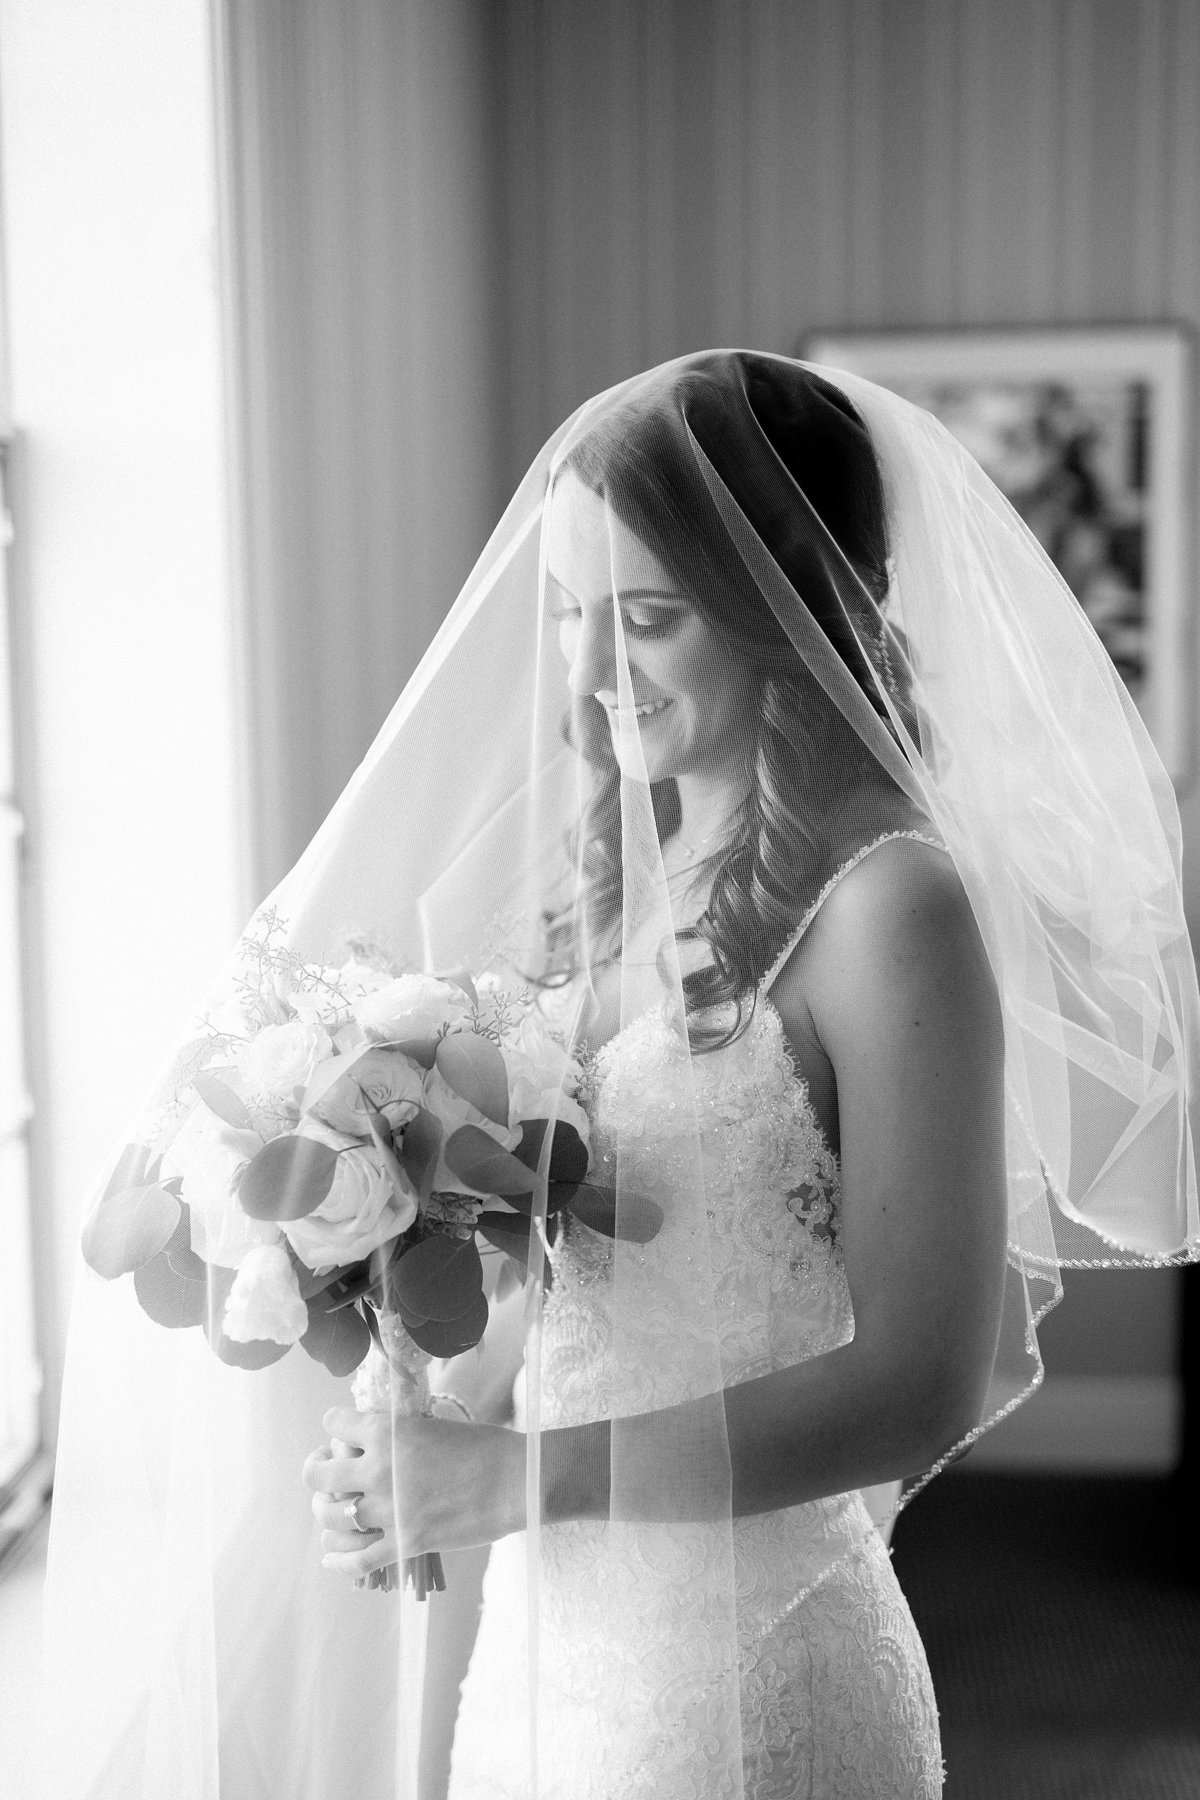 Shuster-Wedding-Grosse-Pointe-War-Memorial-Breanne-Rochelle-Photography26